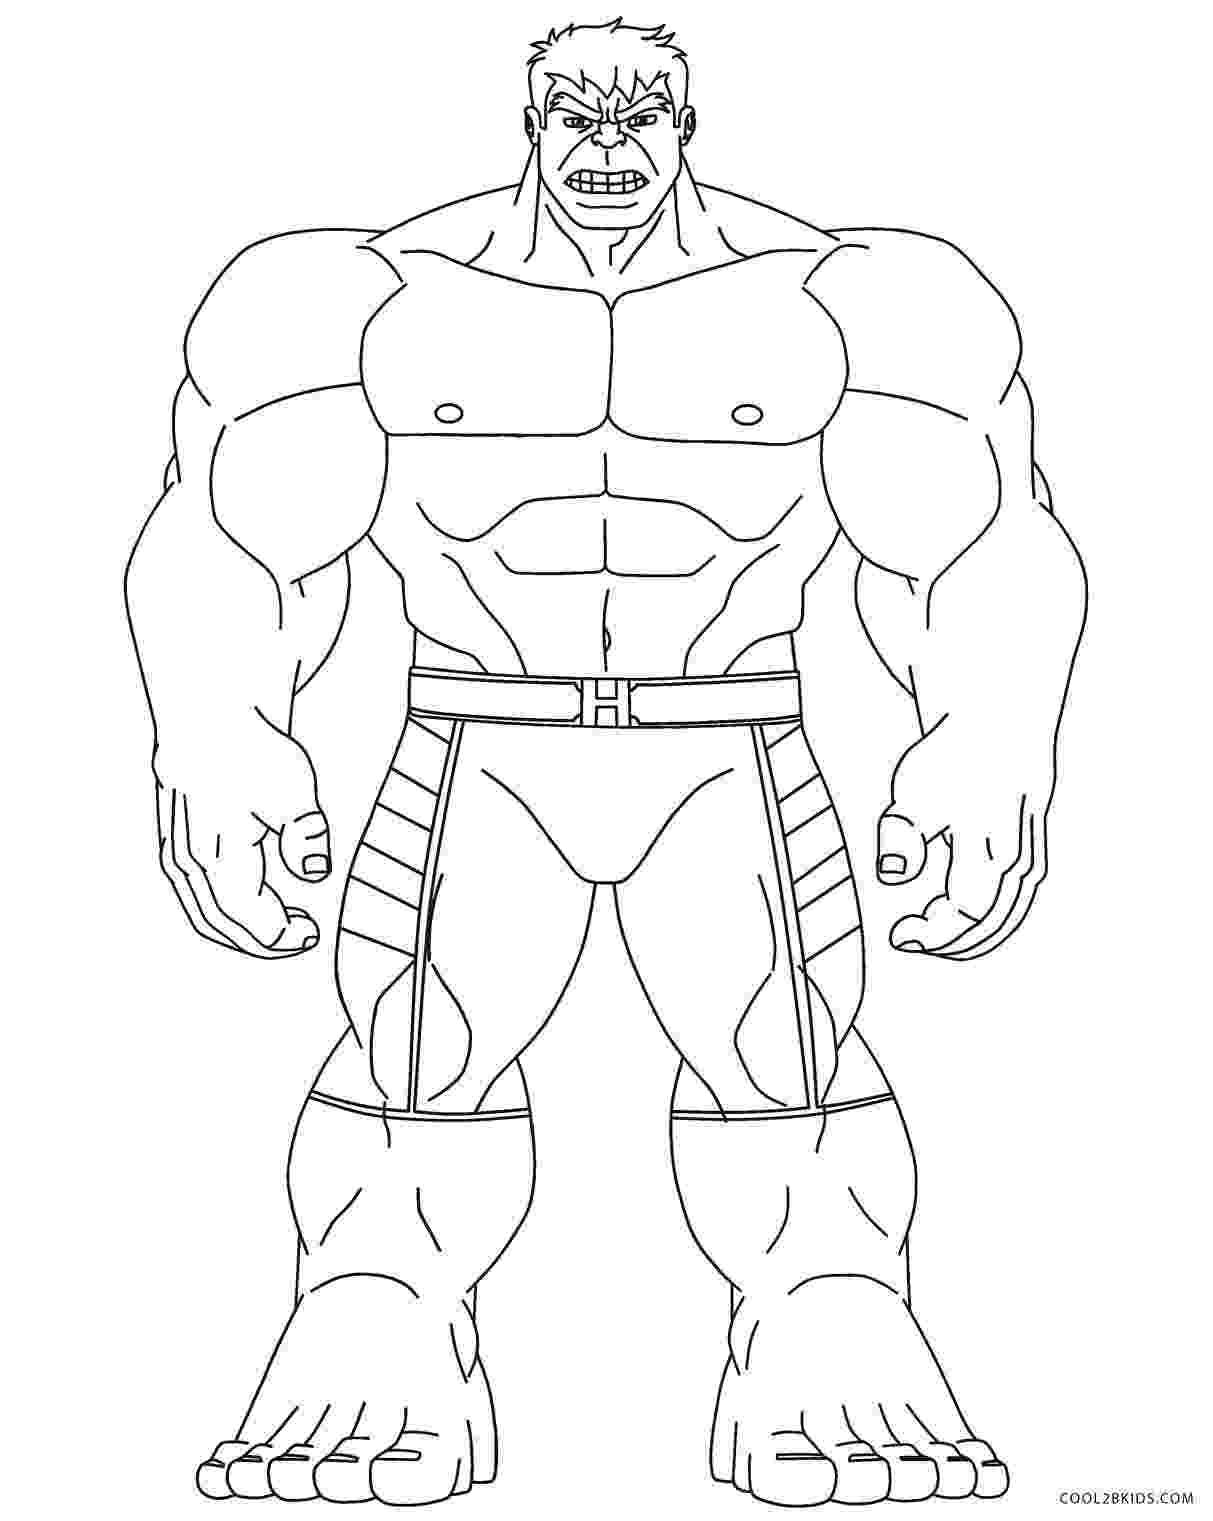 hulk coloring pages to print free free printable hulk coloring pages for kids cool2bkids hulk print to coloring pages free